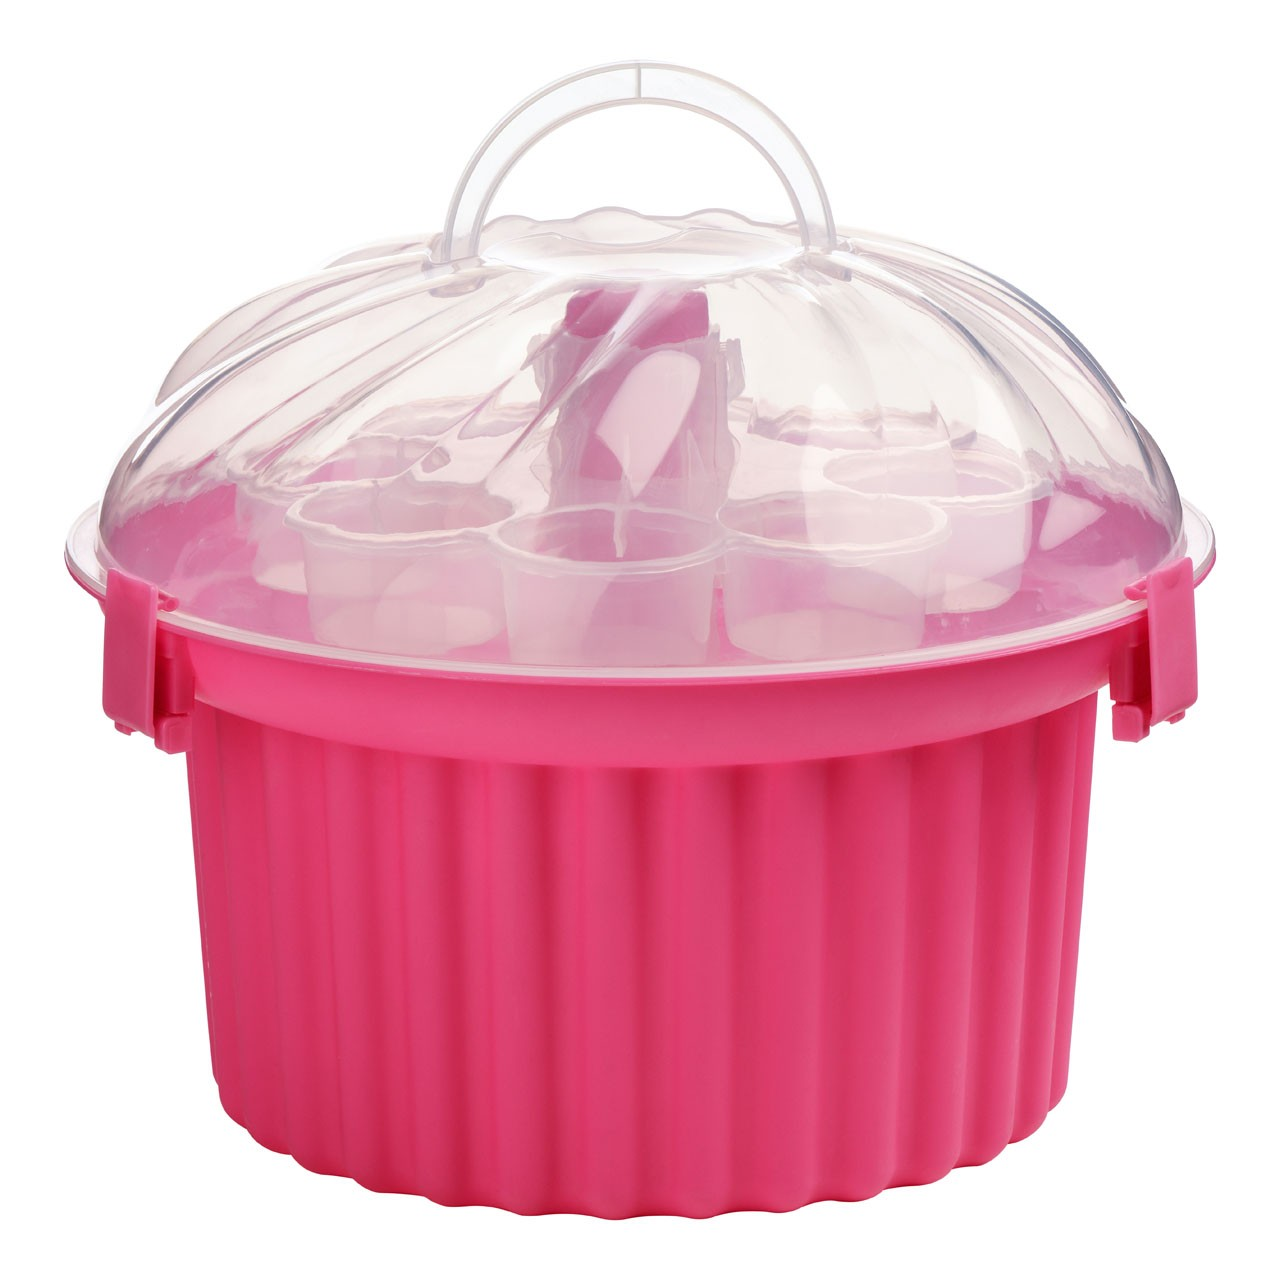 3-Tier Cupcake Carrier - Hot Pink